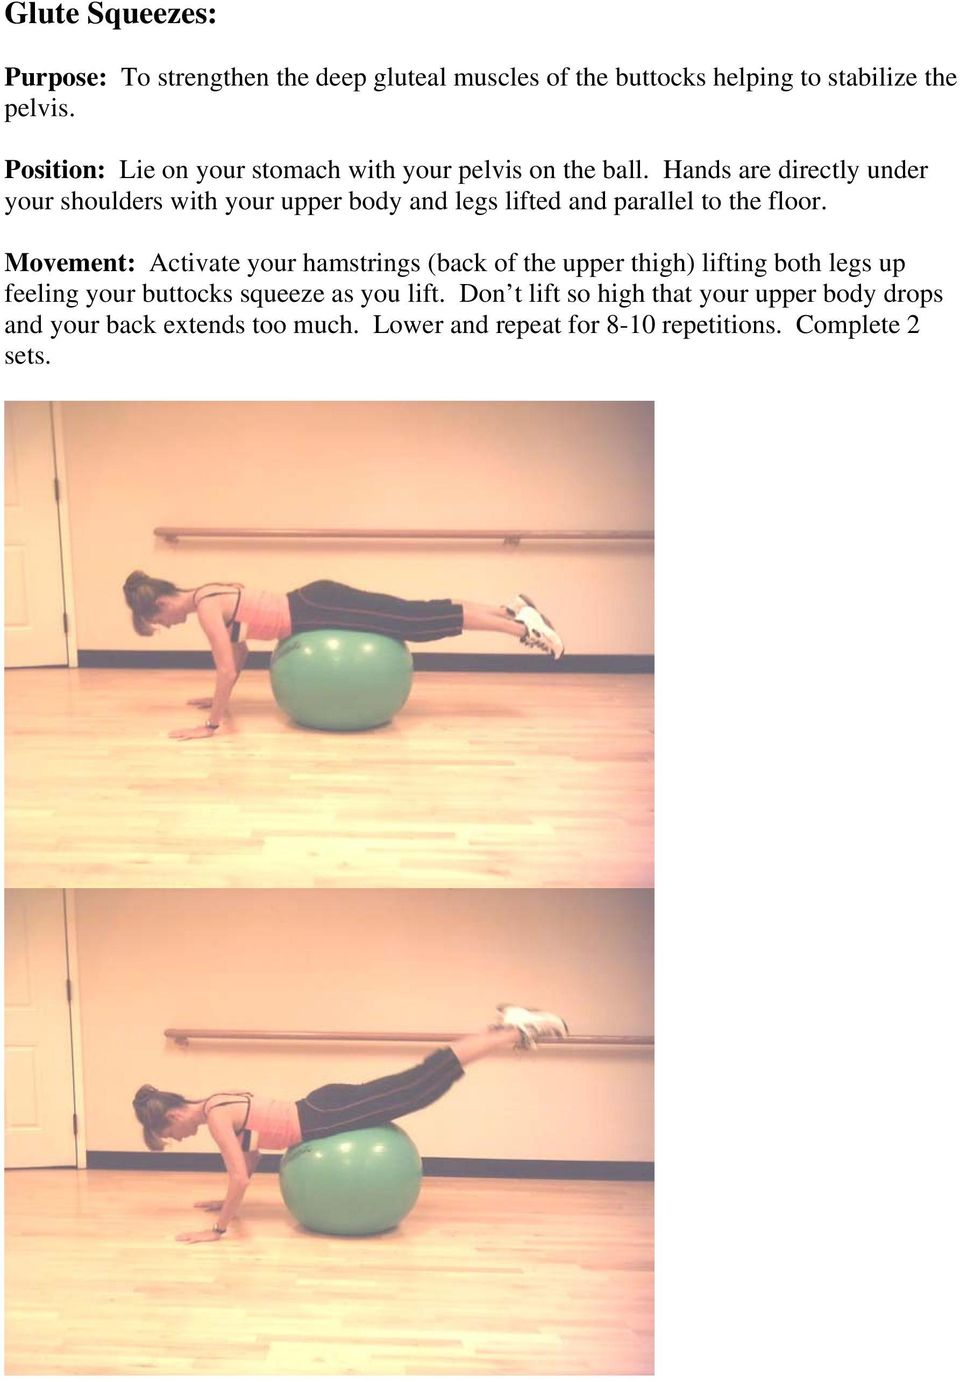 Hands are directly under your shoulders with your upper body and legs lifted and parallel to the floor.